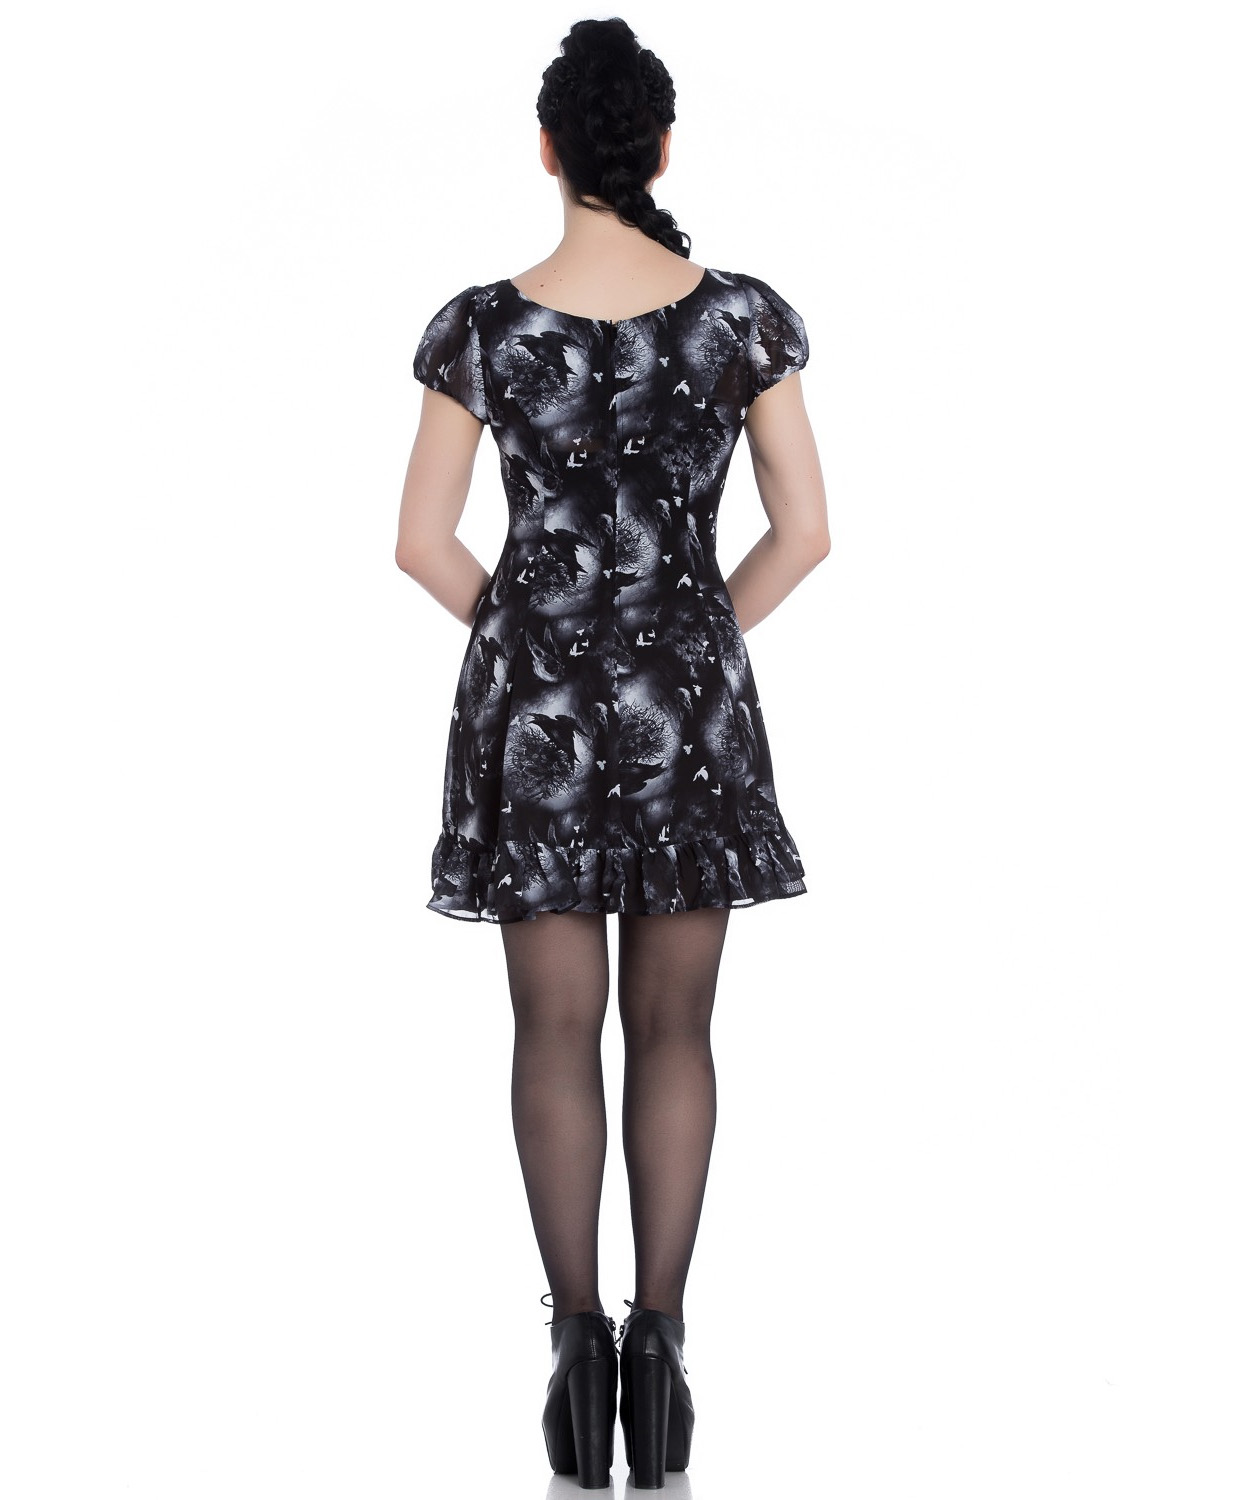 Hell-Bunny-Alchemy-Gothic-Black-Skater-Mini-Dress-ASH-Crows-Skulls-All-Sizes thumbnail 17